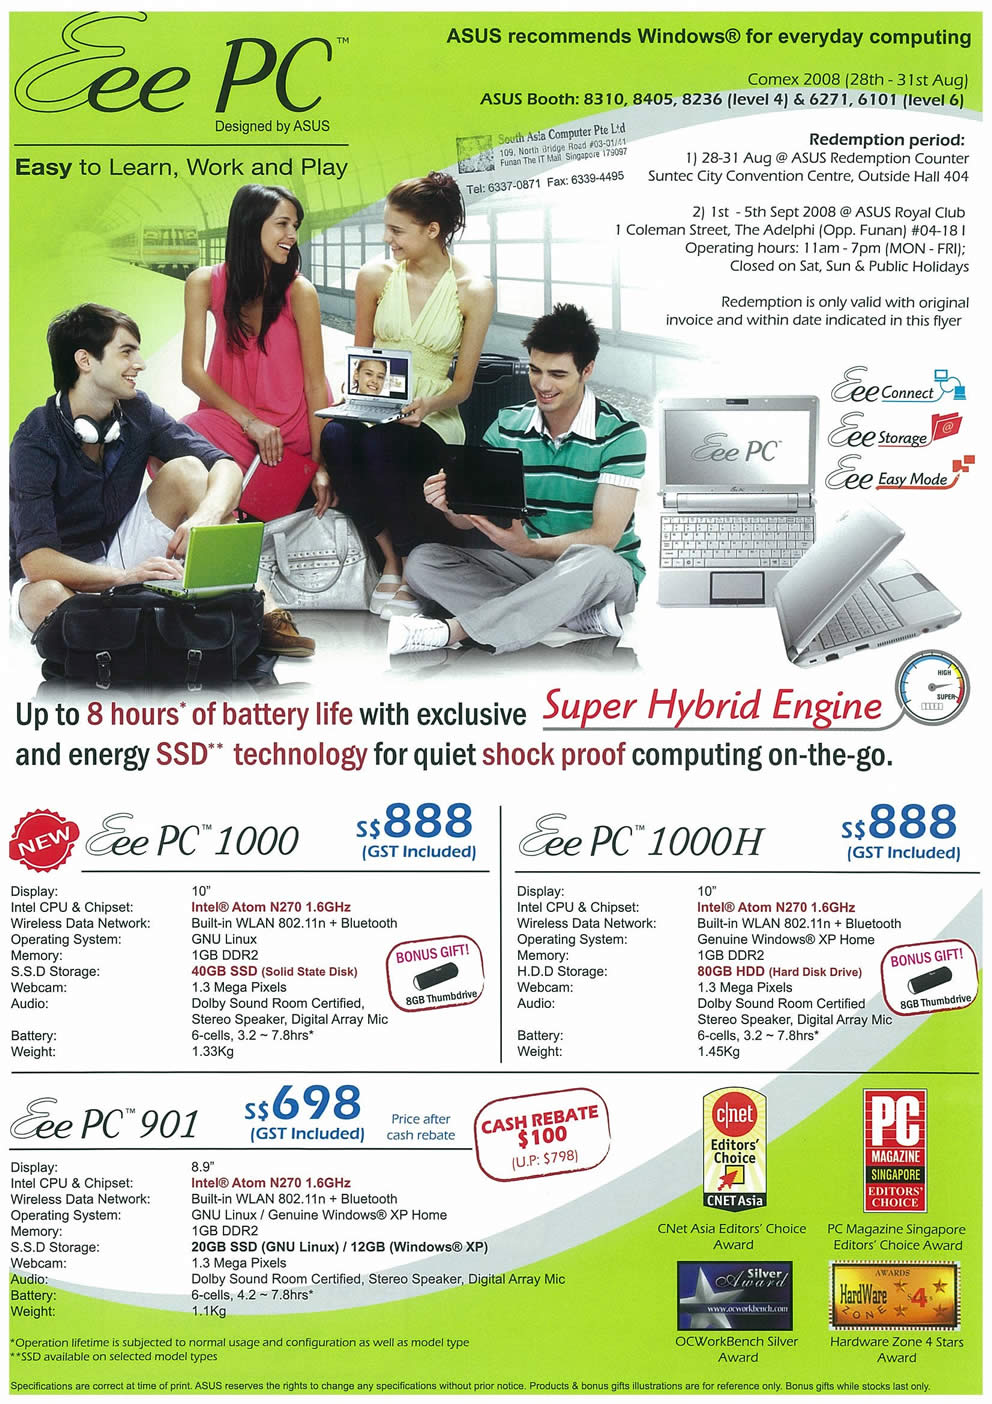 Comex 2008 price list image brochure of ASUS Eee PC Page 2